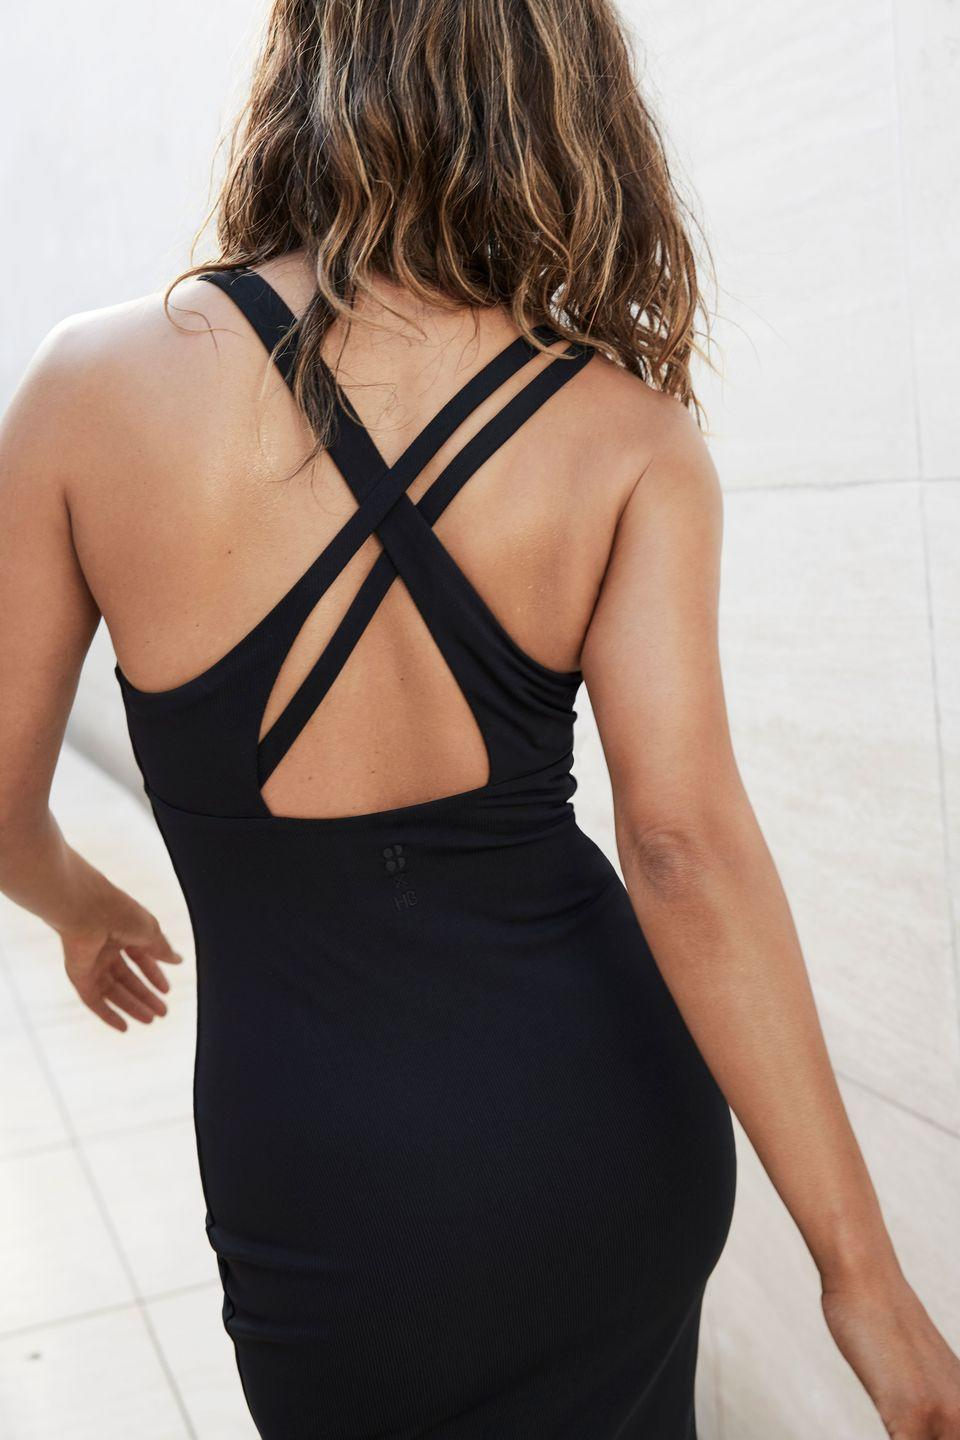 """<p>This slinky midi dress is the perfect dress to throw on after a sweaty cardio session. The stretch jersey fabric means you can roll it up in your gym bag and it will emerge crease-free for a pulled together look post-class. The strappy criss-cross back makes it a summer winner.</p><p><strong>How much? </strong>£120</p><p><a class=""""link rapid-noclick-resp"""" href=""""https://go.redirectingat.com?id=127X1599956&url=https%3A%2F%2Fwww.sweatybetty.com%2Fhalle-berry%2Fhalle-berry-edit%2Femily-strappy-back-dress-SB6911_Black.html%3Fdwvar_SB6911__Black_color%3Dblack%26cgid%3Dhalle-berry-edit%26tile%3D6.0%23start%3D6&sref=https%3A%2F%2Fwww.prima.co.uk%2Ffashion-and-beauty%2Ffashion-tips%2Fg36471272%2Fsweaty-betty-halle-berry%2F"""" rel=""""nofollow noopener"""" target=""""_blank"""" data-ylk=""""slk:SHOP NOW"""">SHOP NOW</a></p>"""